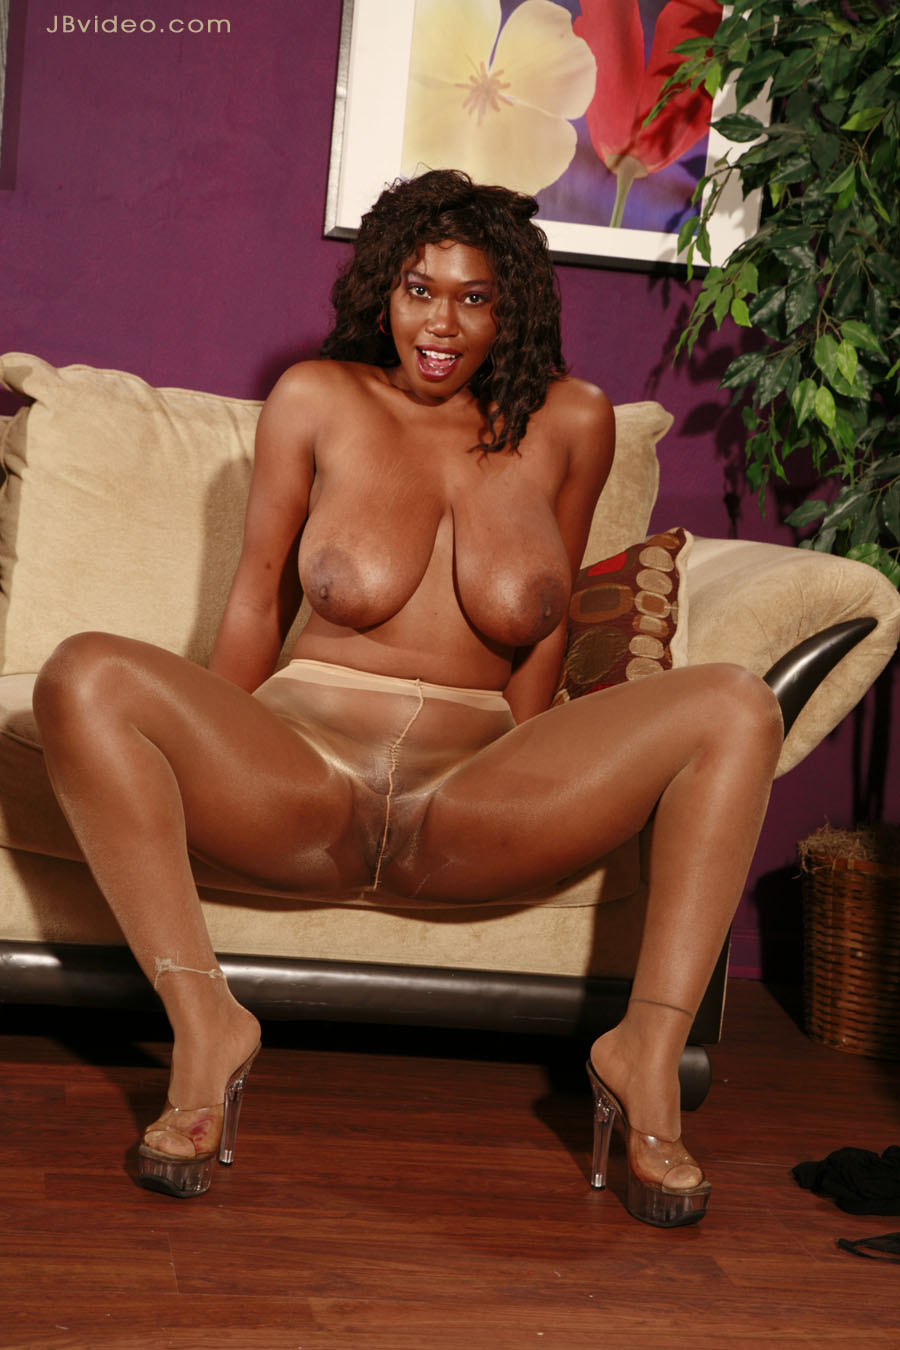 18 years old ebony girl sucks and fucks the it guy 7